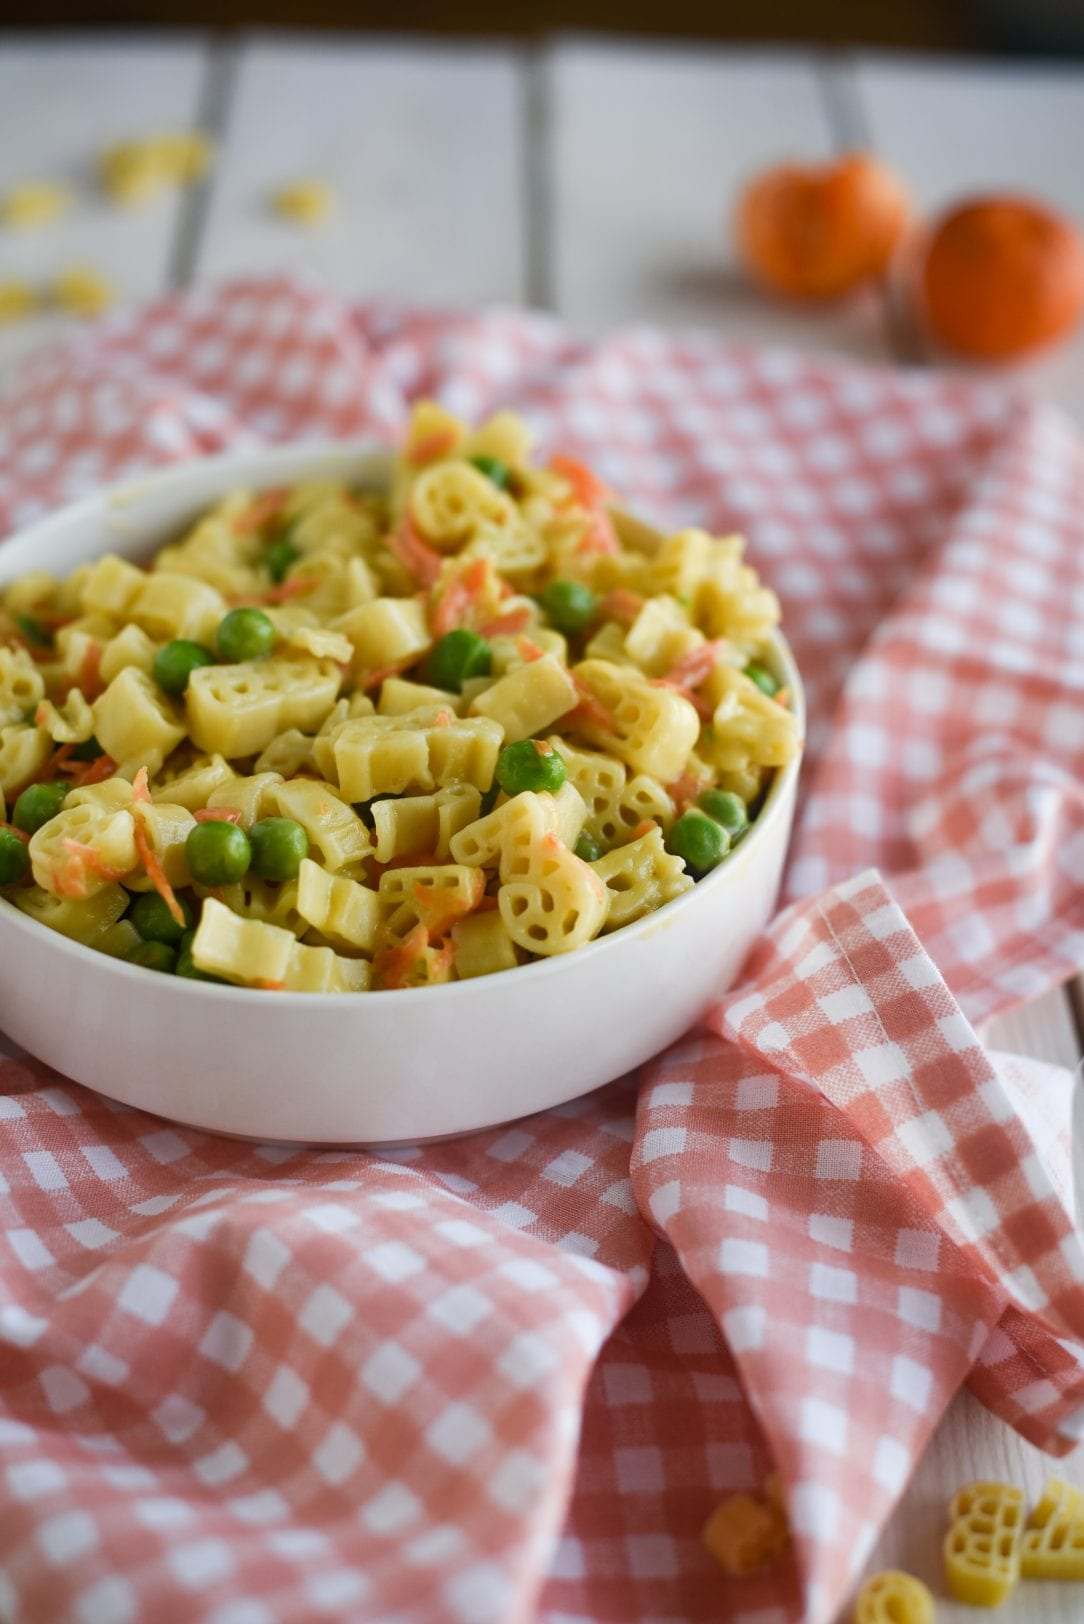 pasta in bowl with vegetables